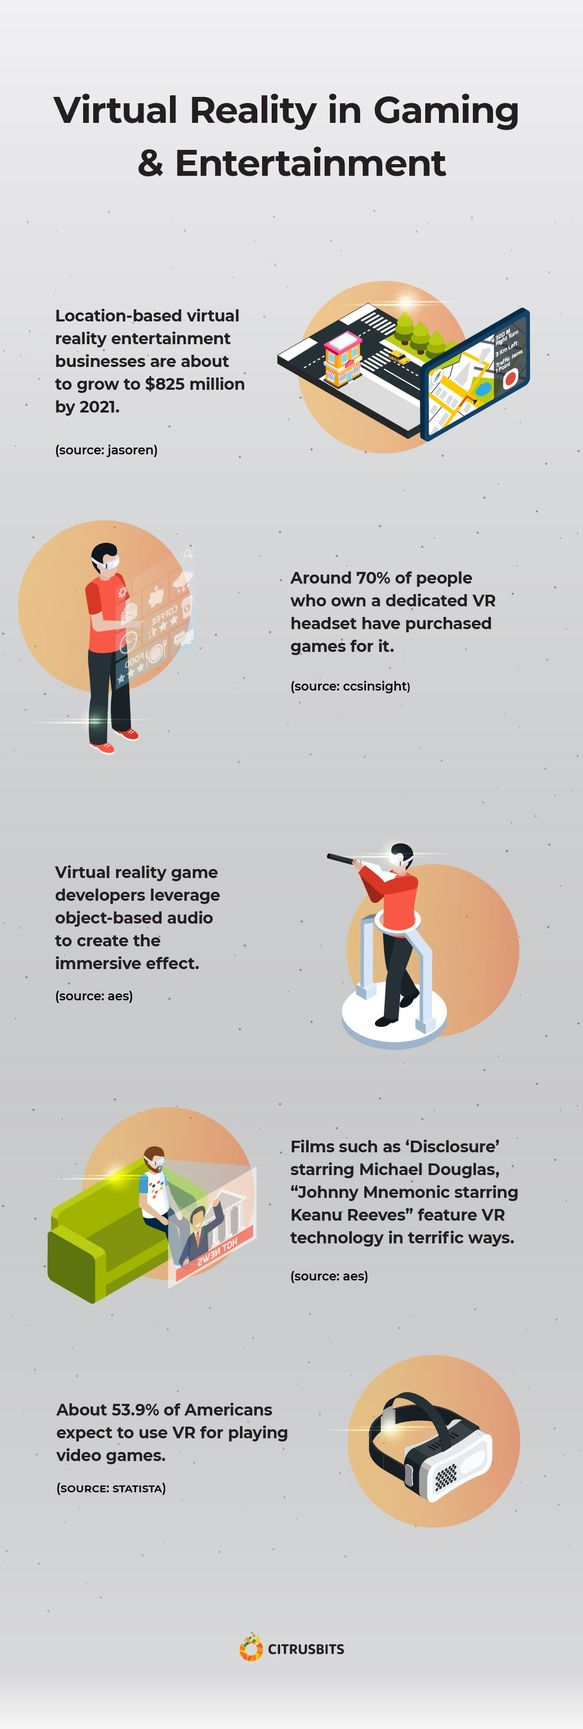 VR in gaming and entertainment